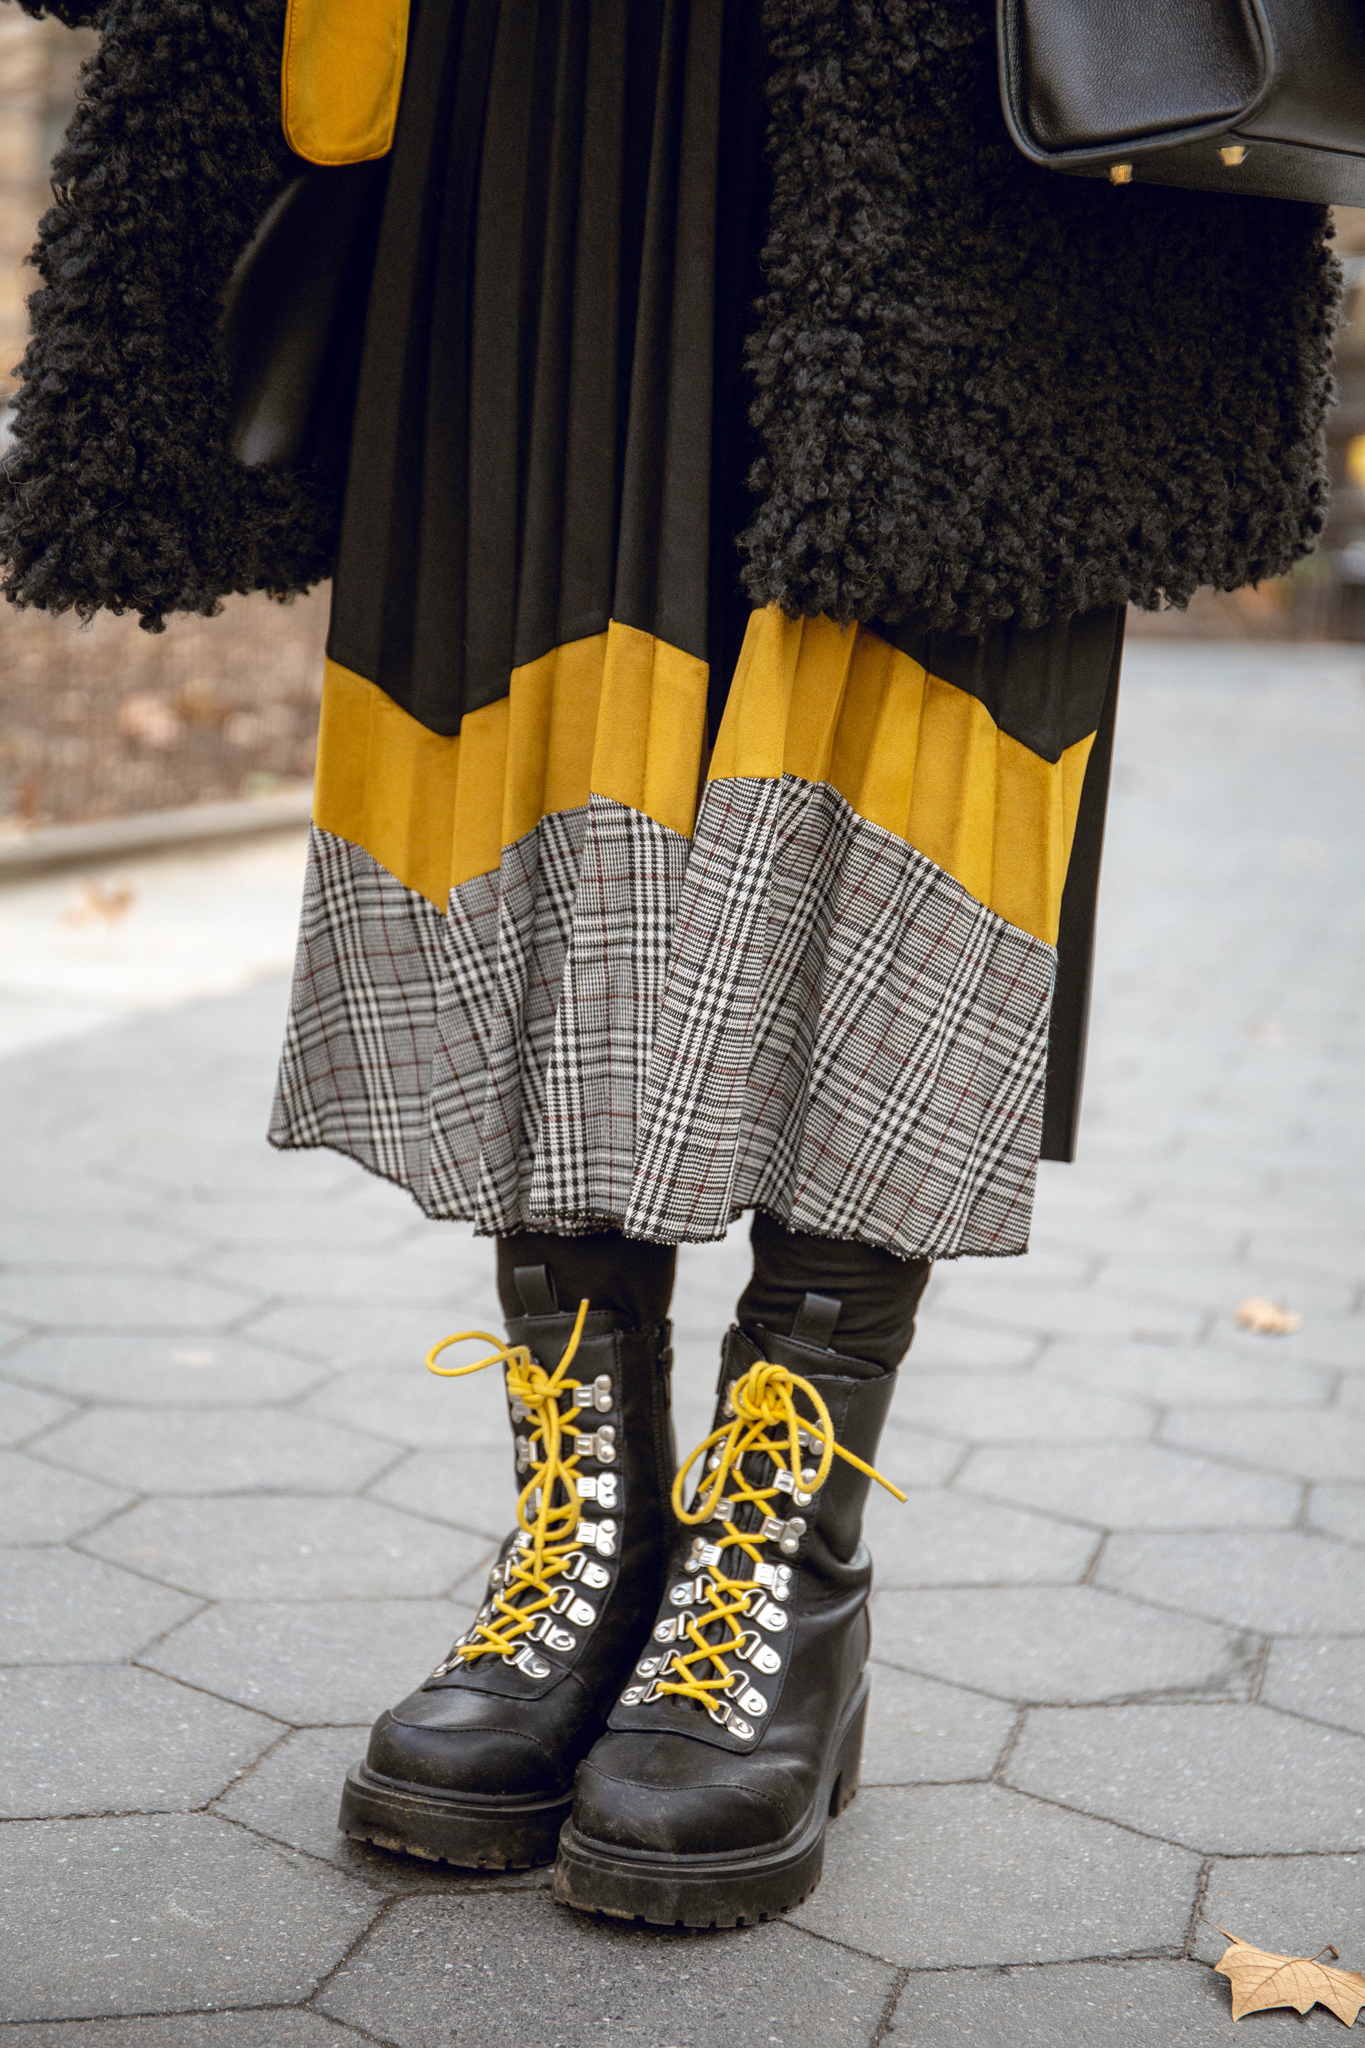 Pleated skirt with boots